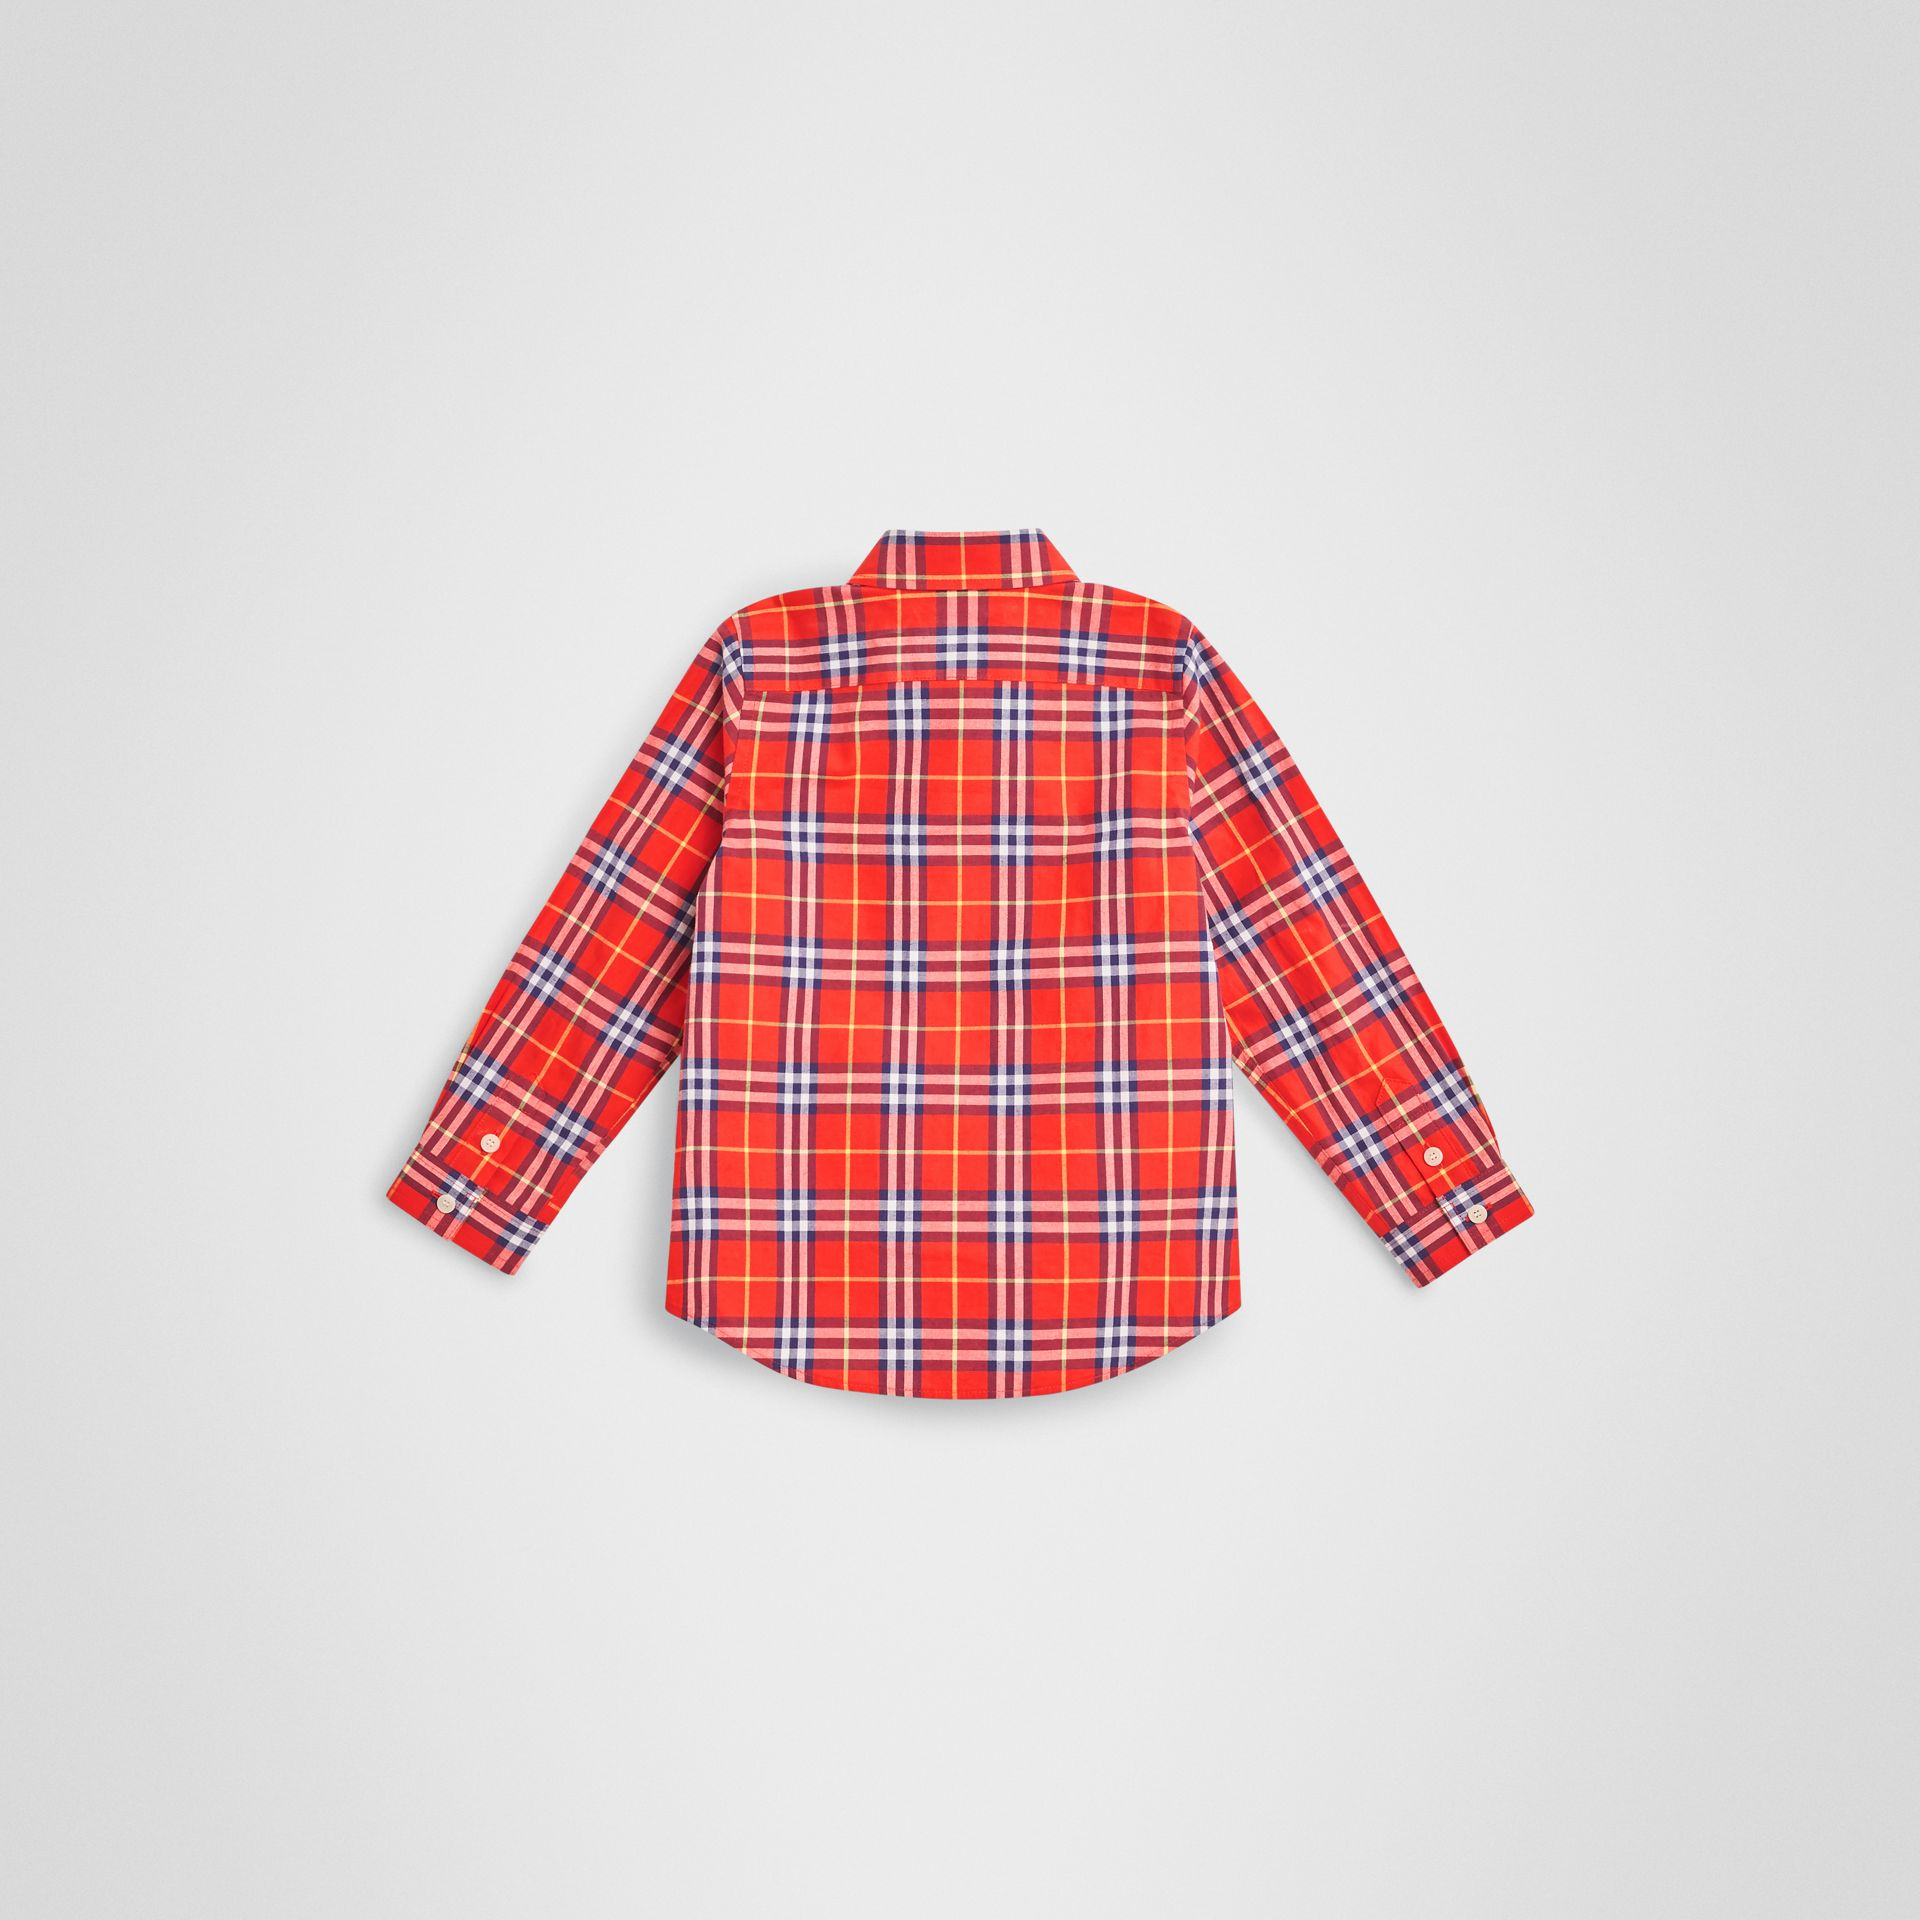 Button-down Collar Check Flannel Shirt in Orange Red | Burberry - gallery image 3